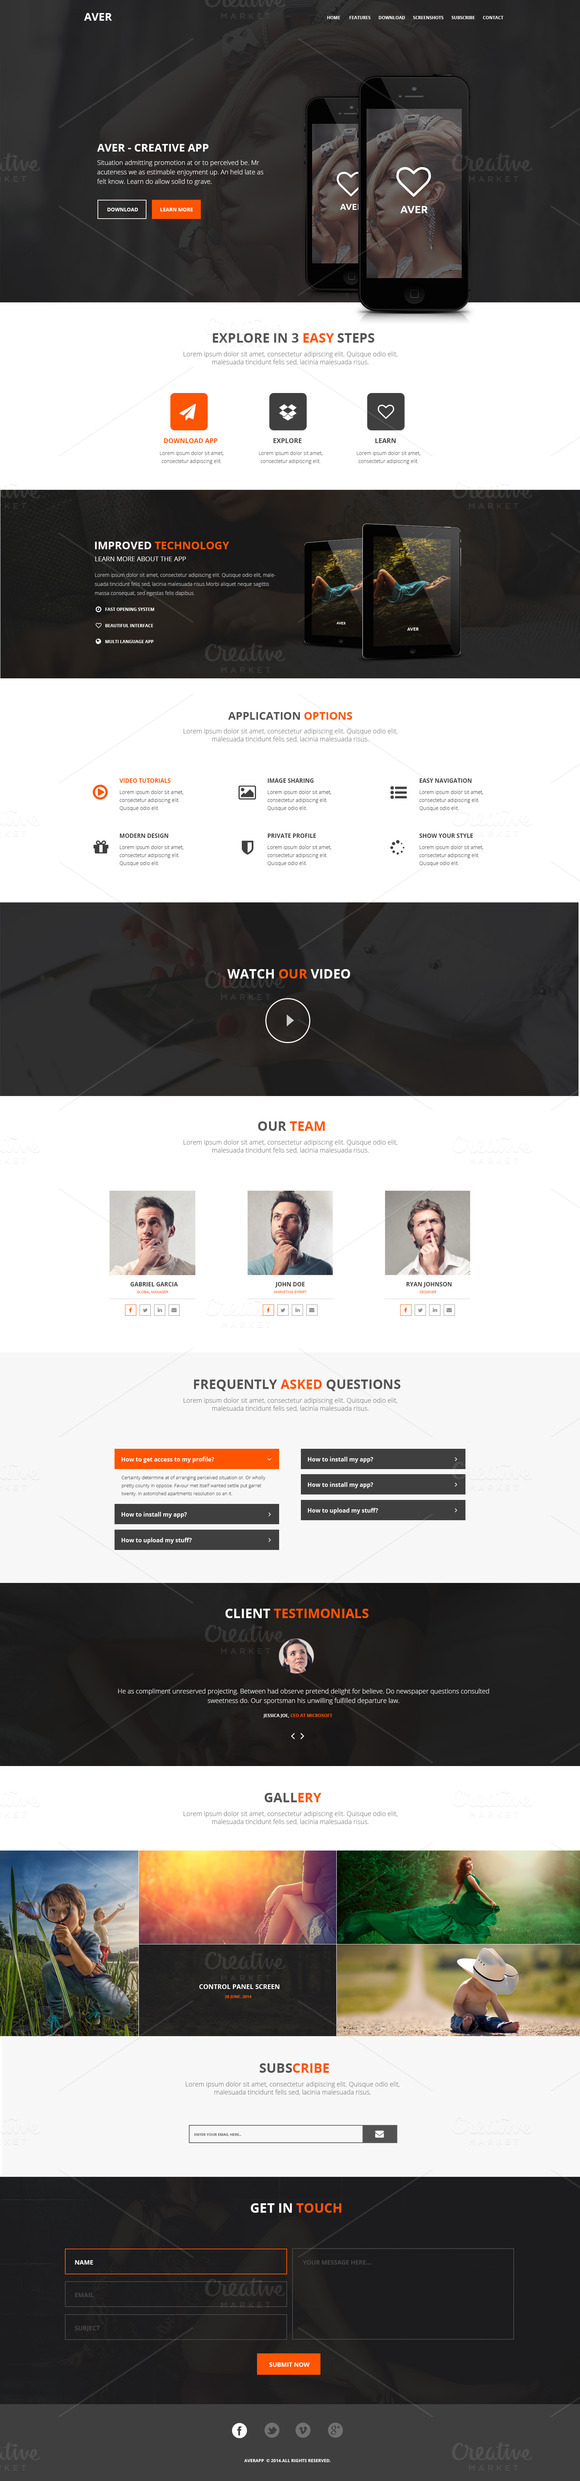 Aver PSD Landing Page